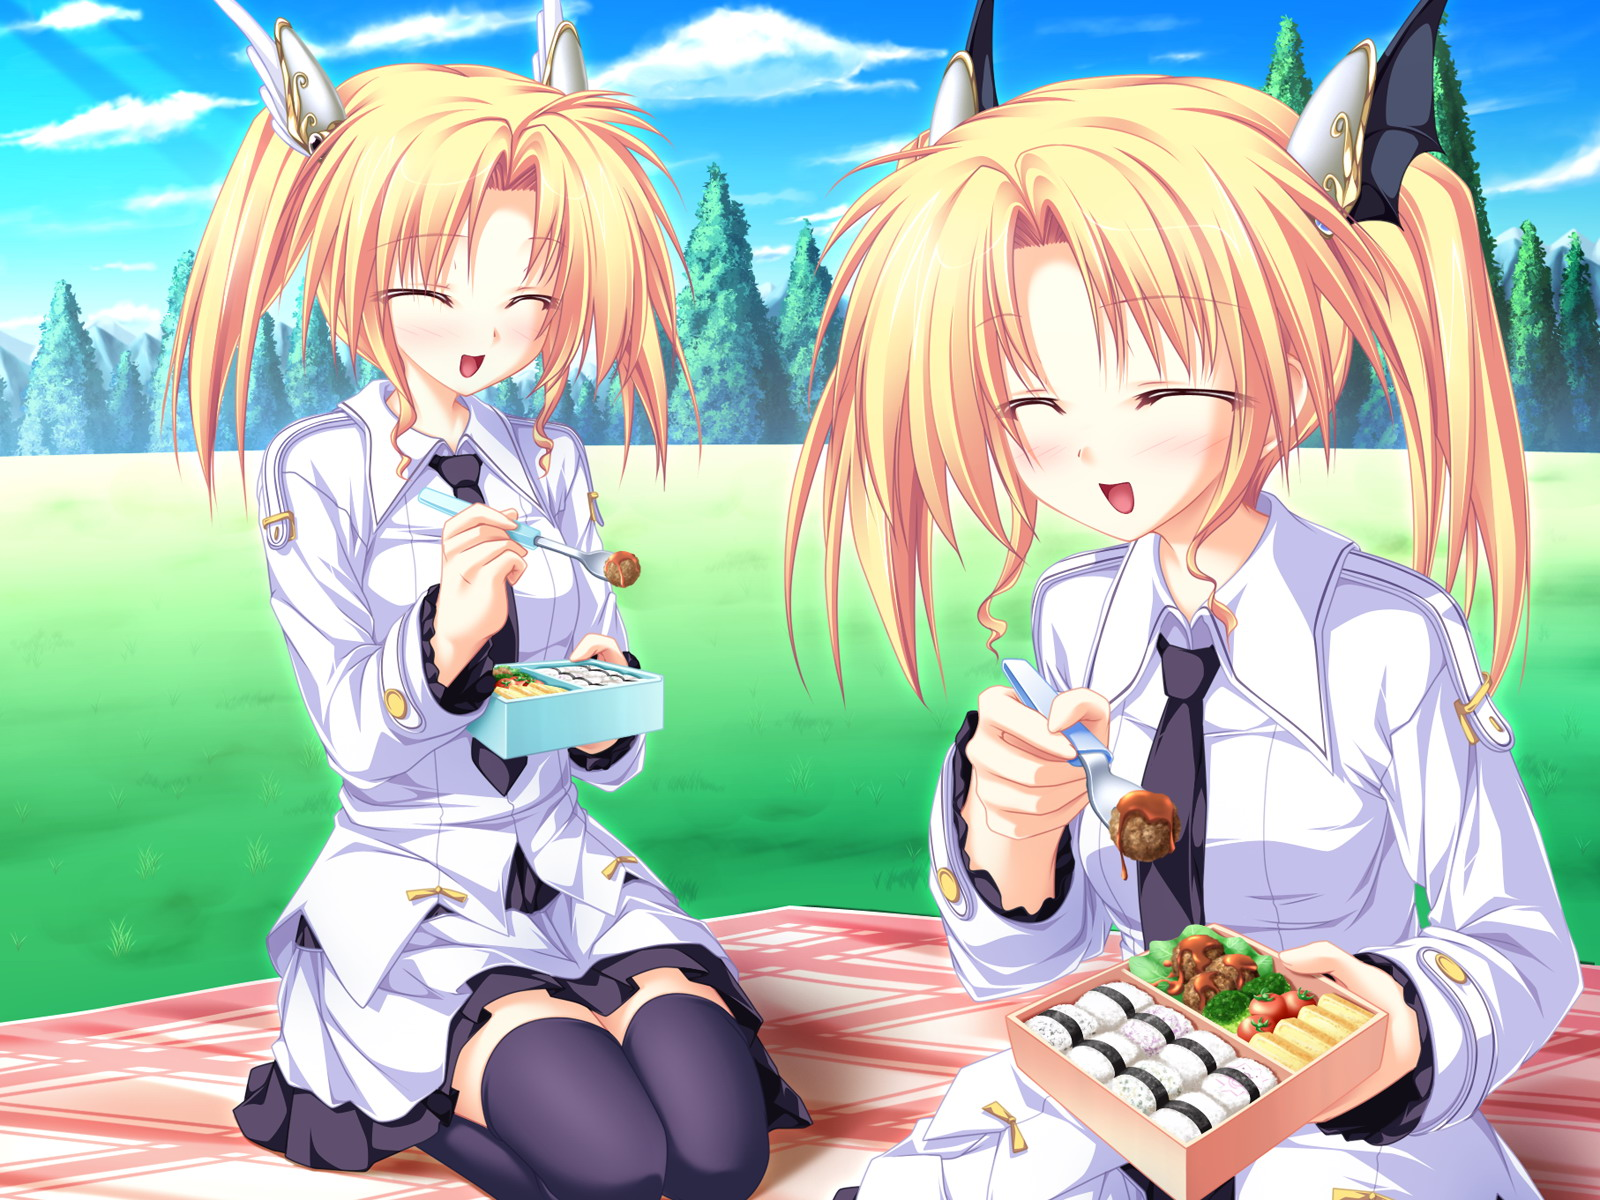 blonde_hair food game_cg grass magus_tale nina_geminis rena_geminis school_uniform sky tenmaso thighhighs tie tree twins twintails whirlpool